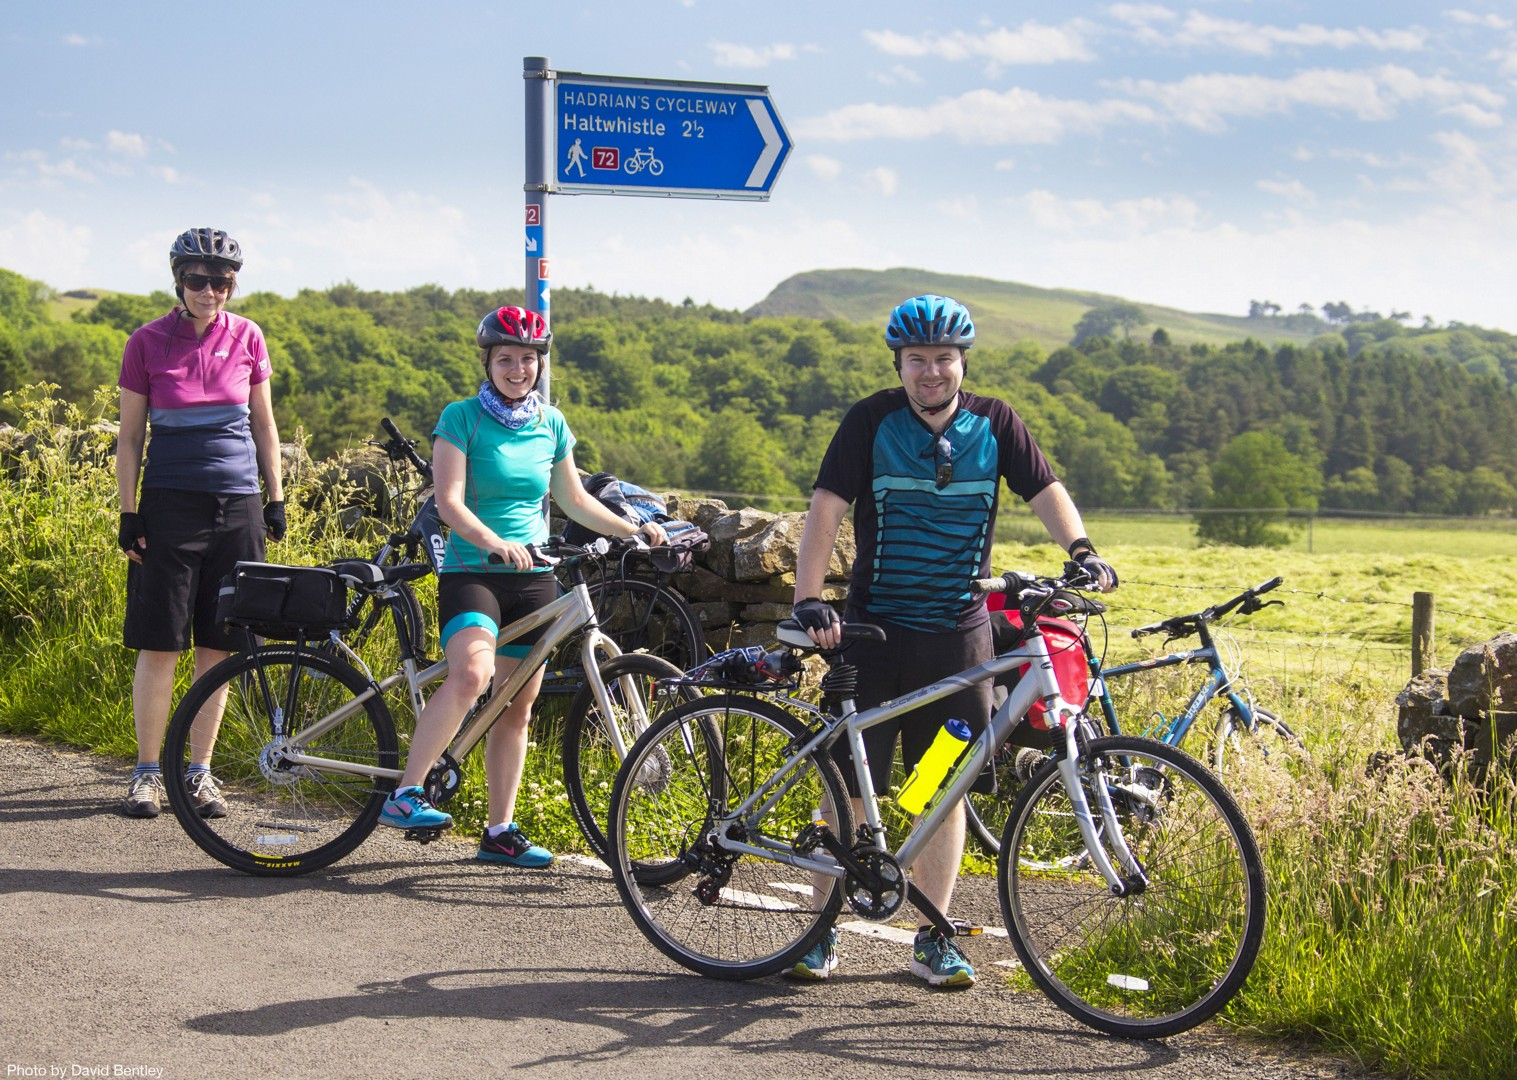 Hadrians-Cycleway-Self-Guided-Leisure-Cycling-Holiday-Follow-the-footsteps-of-the-Roman-Empire.jpg - UK - Hadrian's Cycleway - 3 Days Cycling - Self-Guided Leisure Cycling Holiday - Leisure Cycling